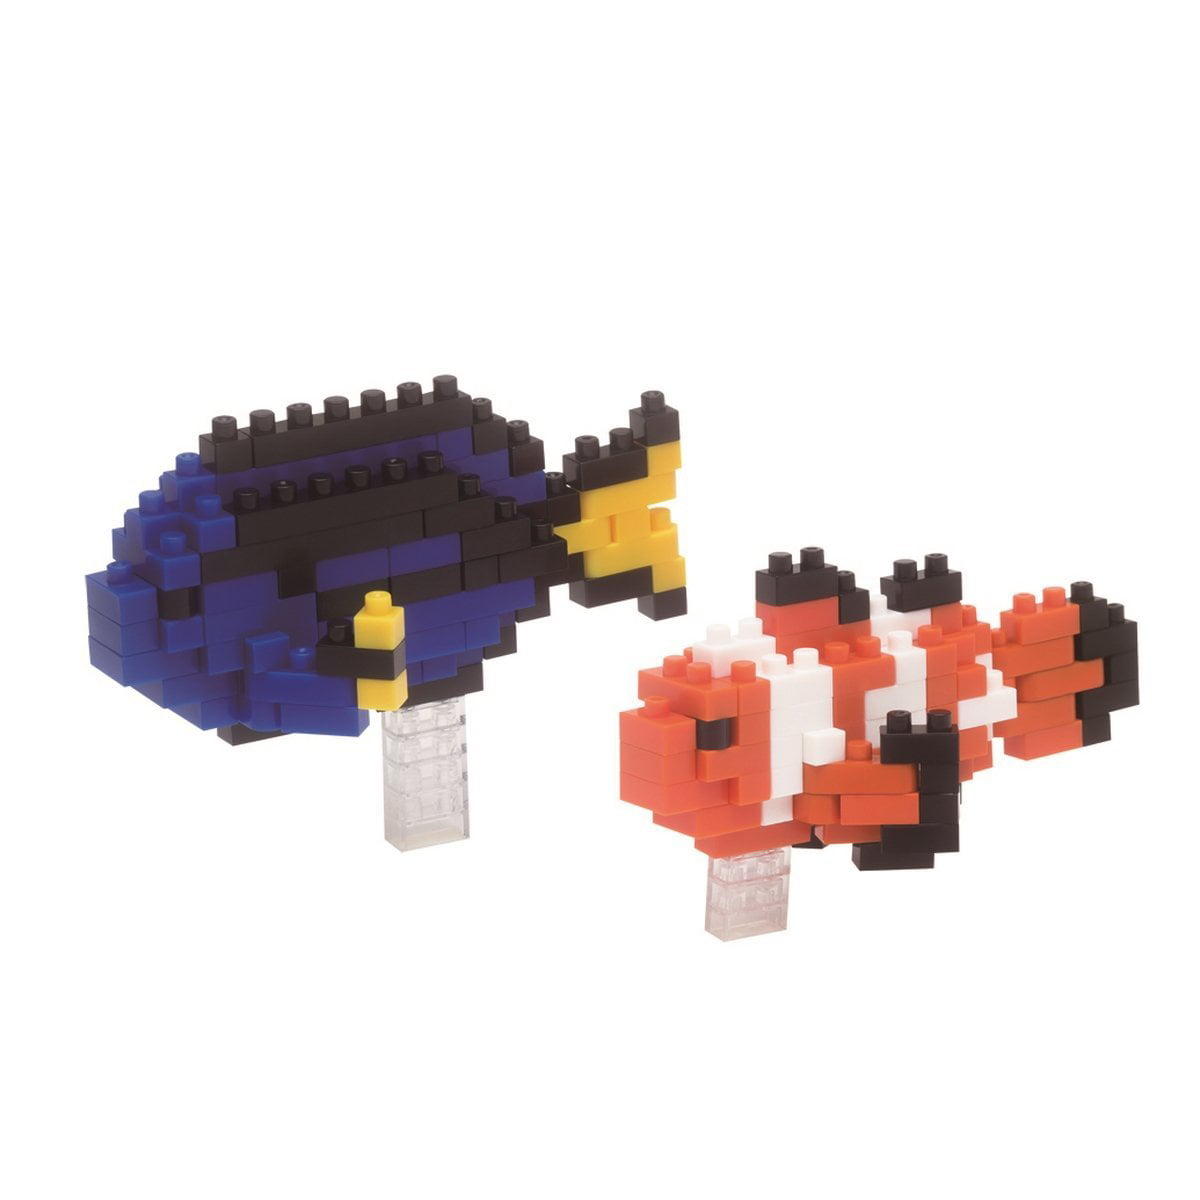 Clownfish & Palette Surgeonfish Building Kit, An aquarium in bricks, watch the fish swim... by